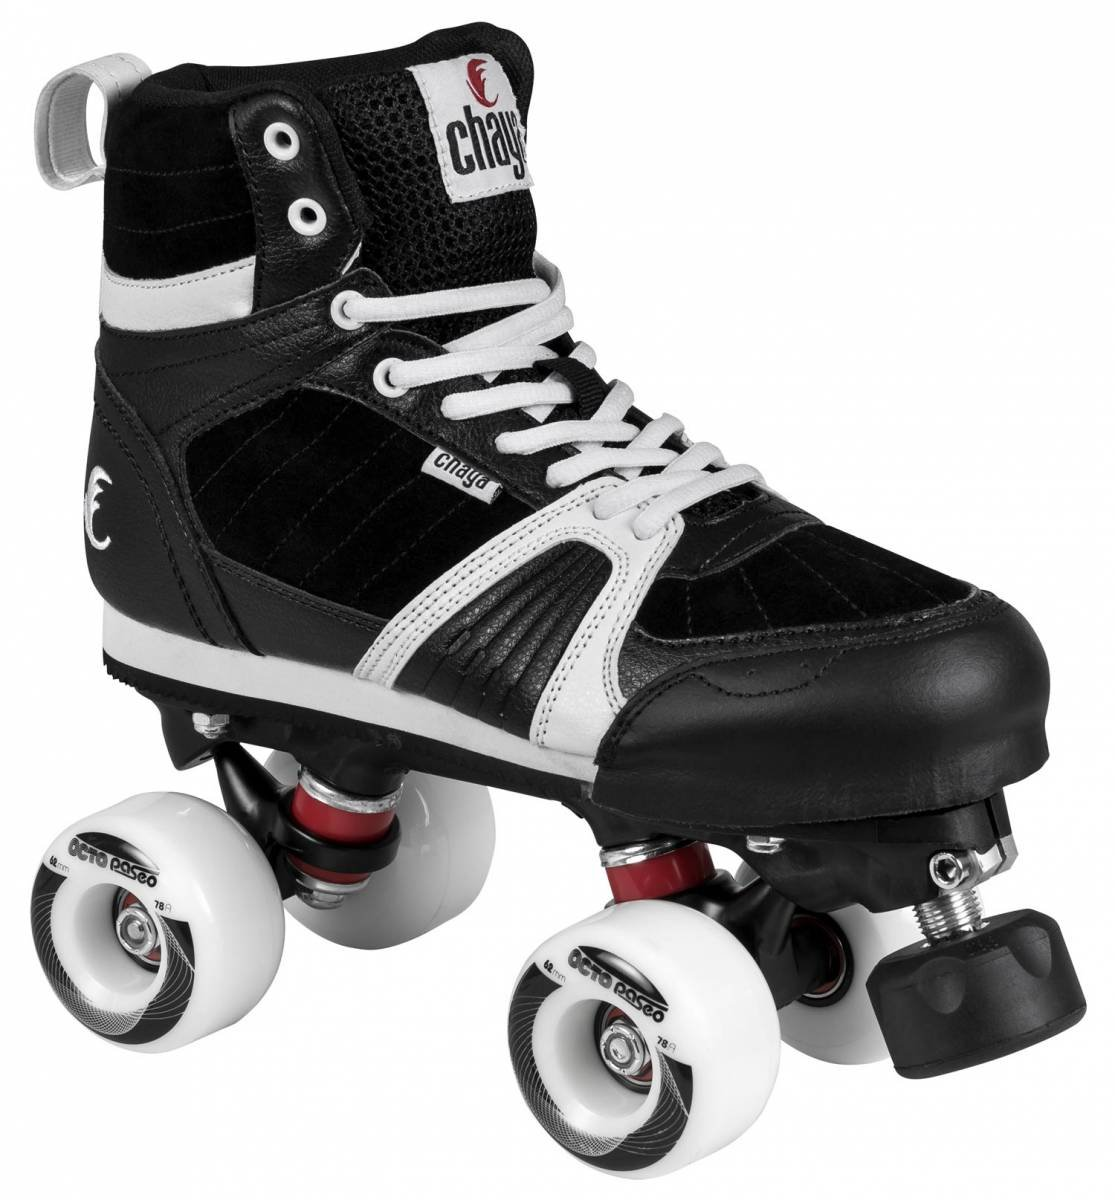 Chaya Jump Black Outdoor Park Roller Skate with Dual Center Mounting (Euro 41 / US 8)